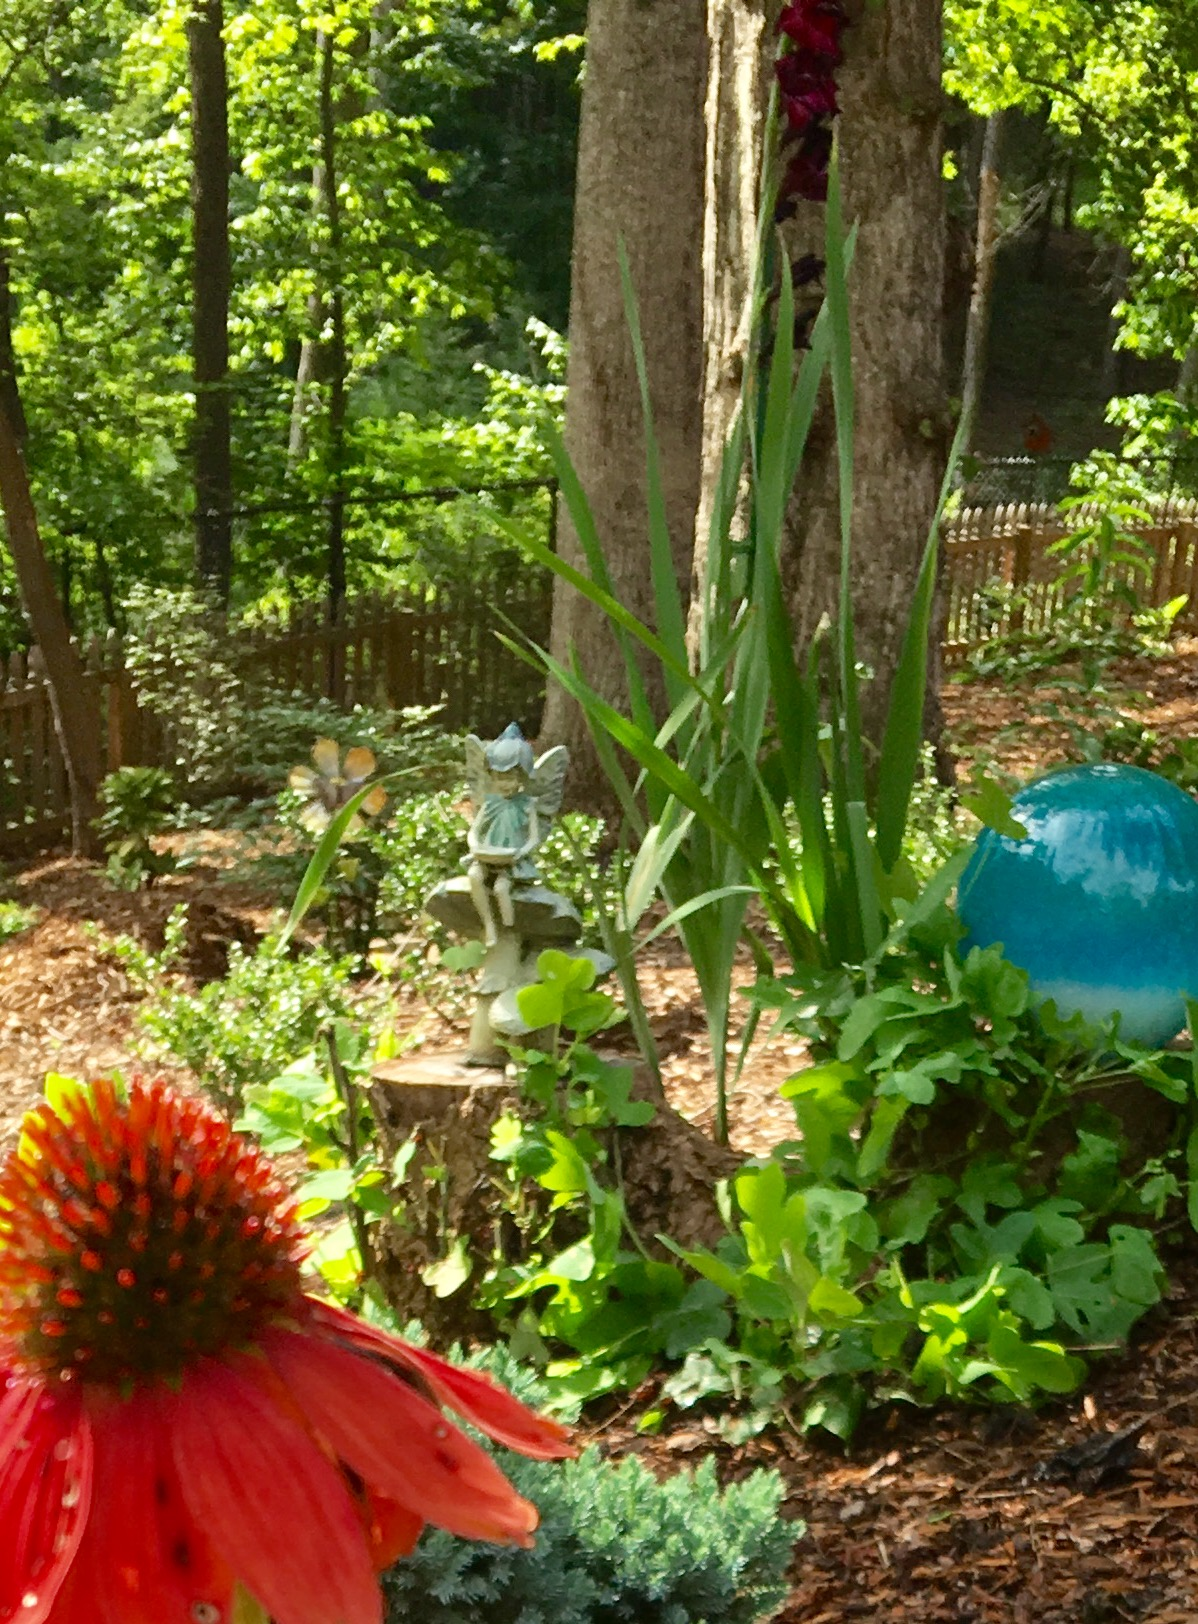 Art work factors into Becky's garden. The blue ceramic ball adds a colorful touch next to the 'Red Salsa' echinacea.